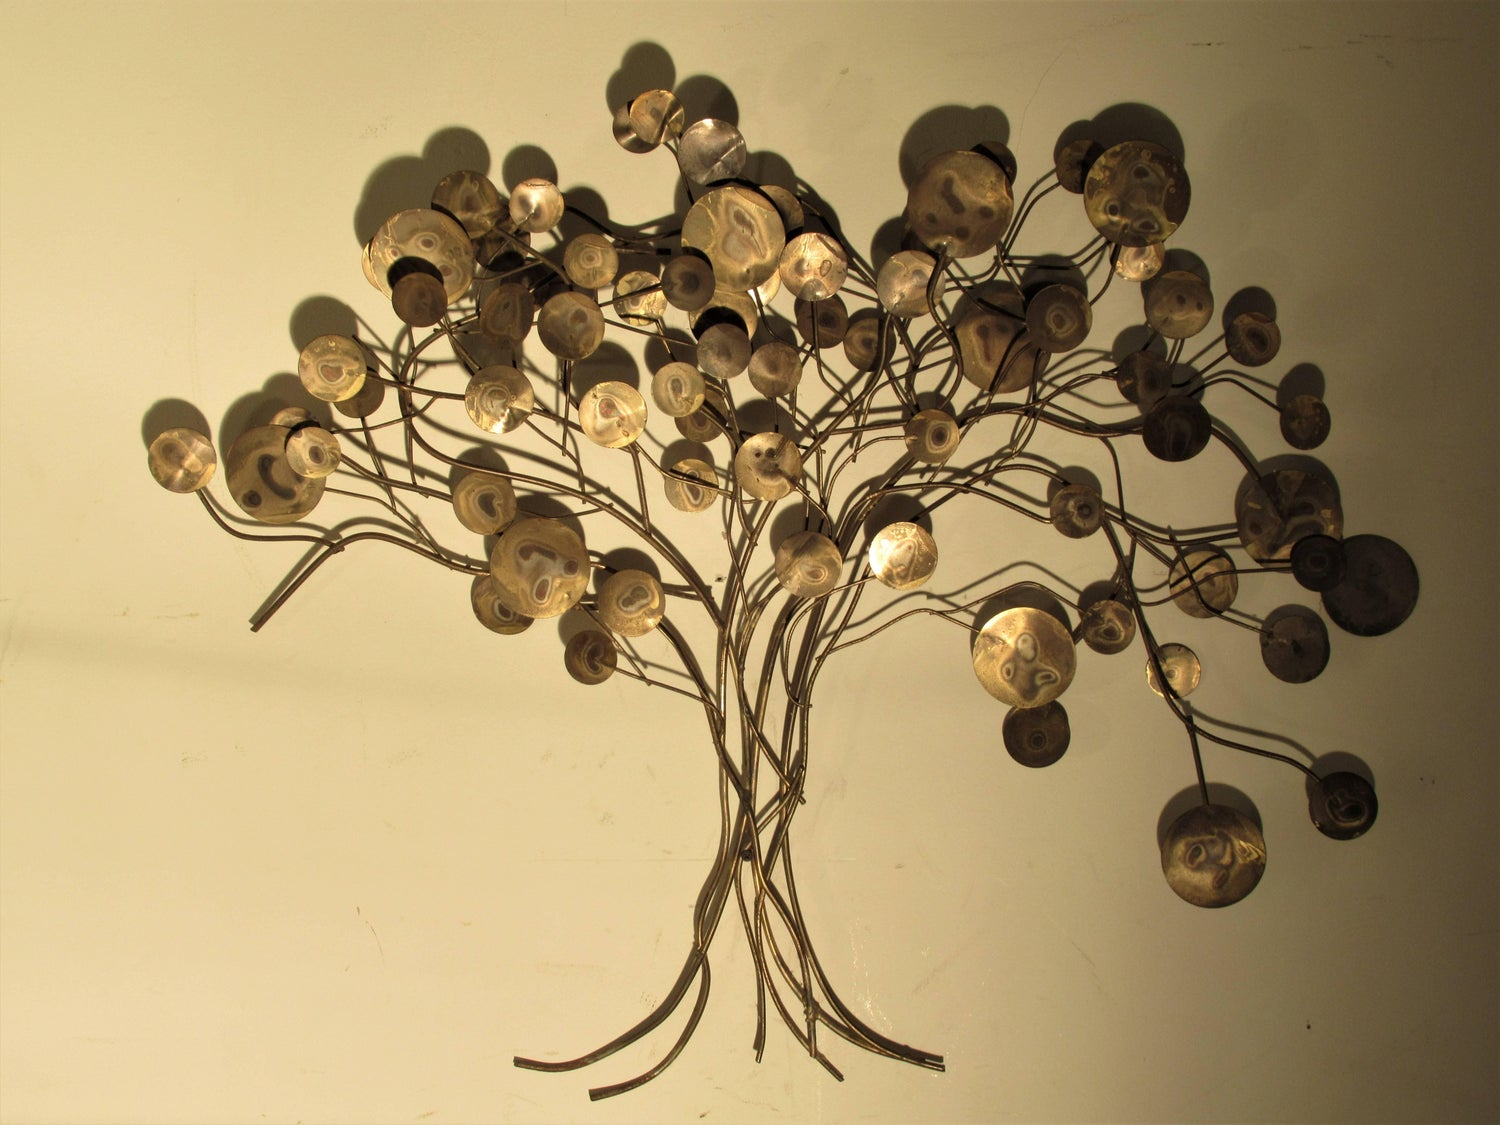 Raindrop Tree Wall Sculpture by C. Jere For Sale at 1stdibs